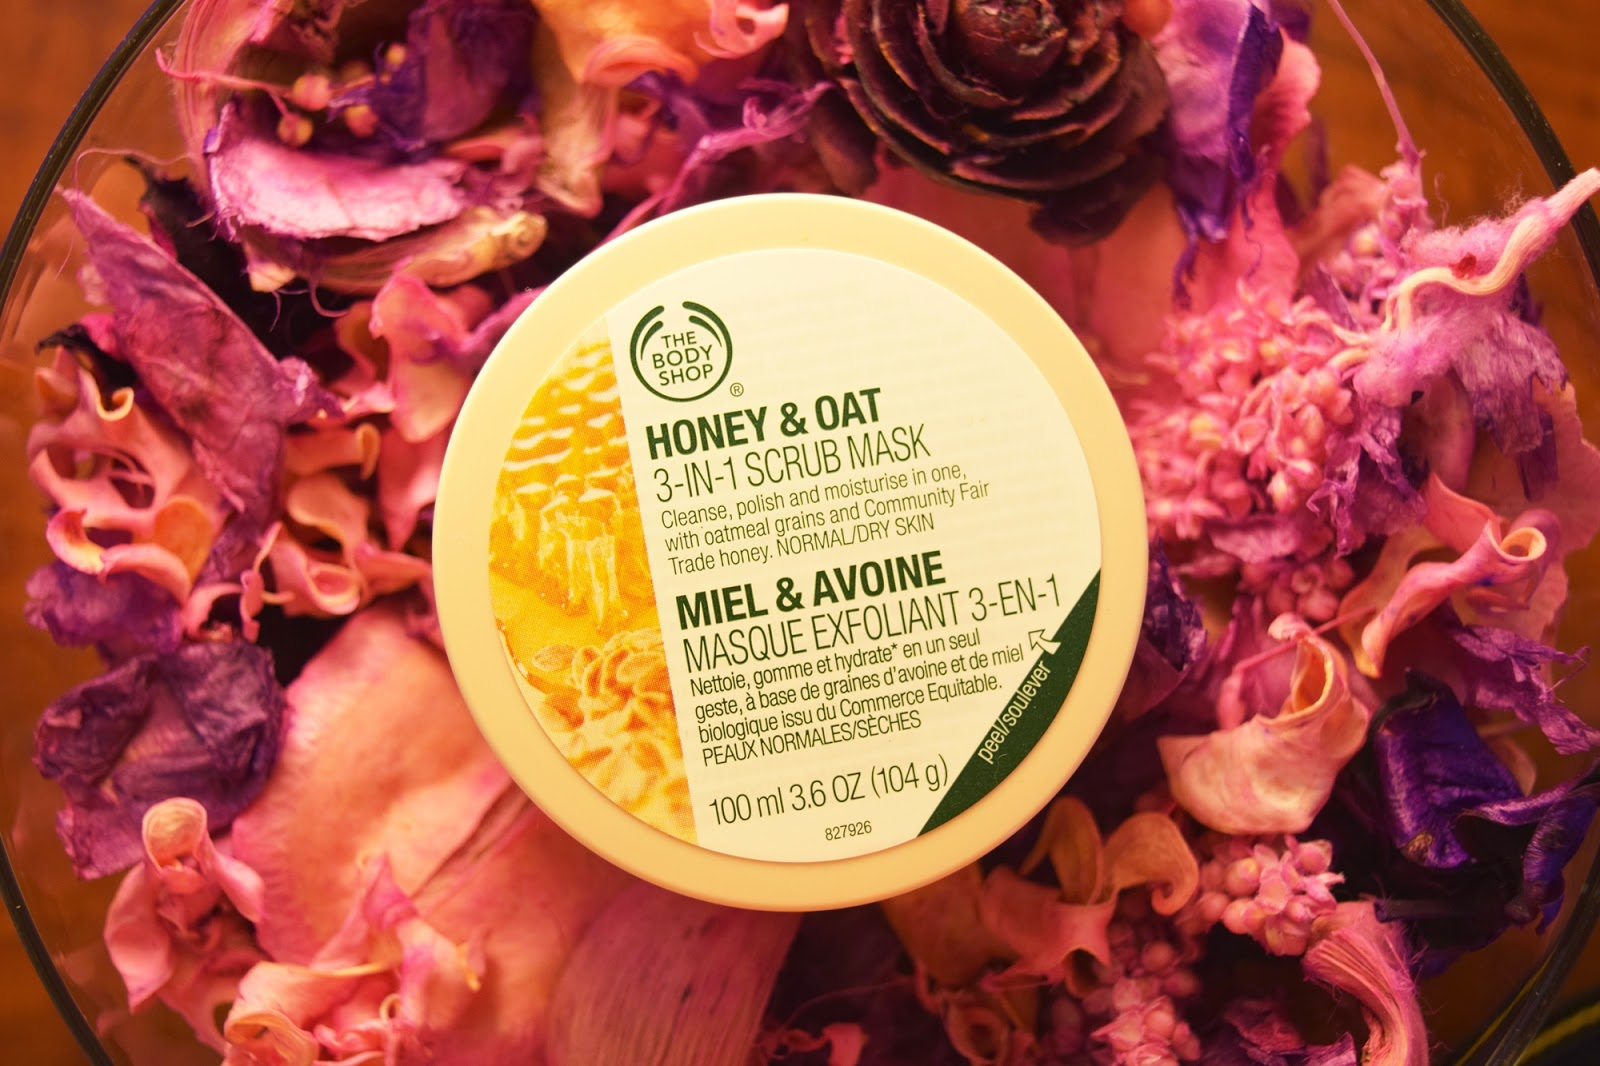 Honey & Oat 3-in-1 Scrub Mask The Body Shop